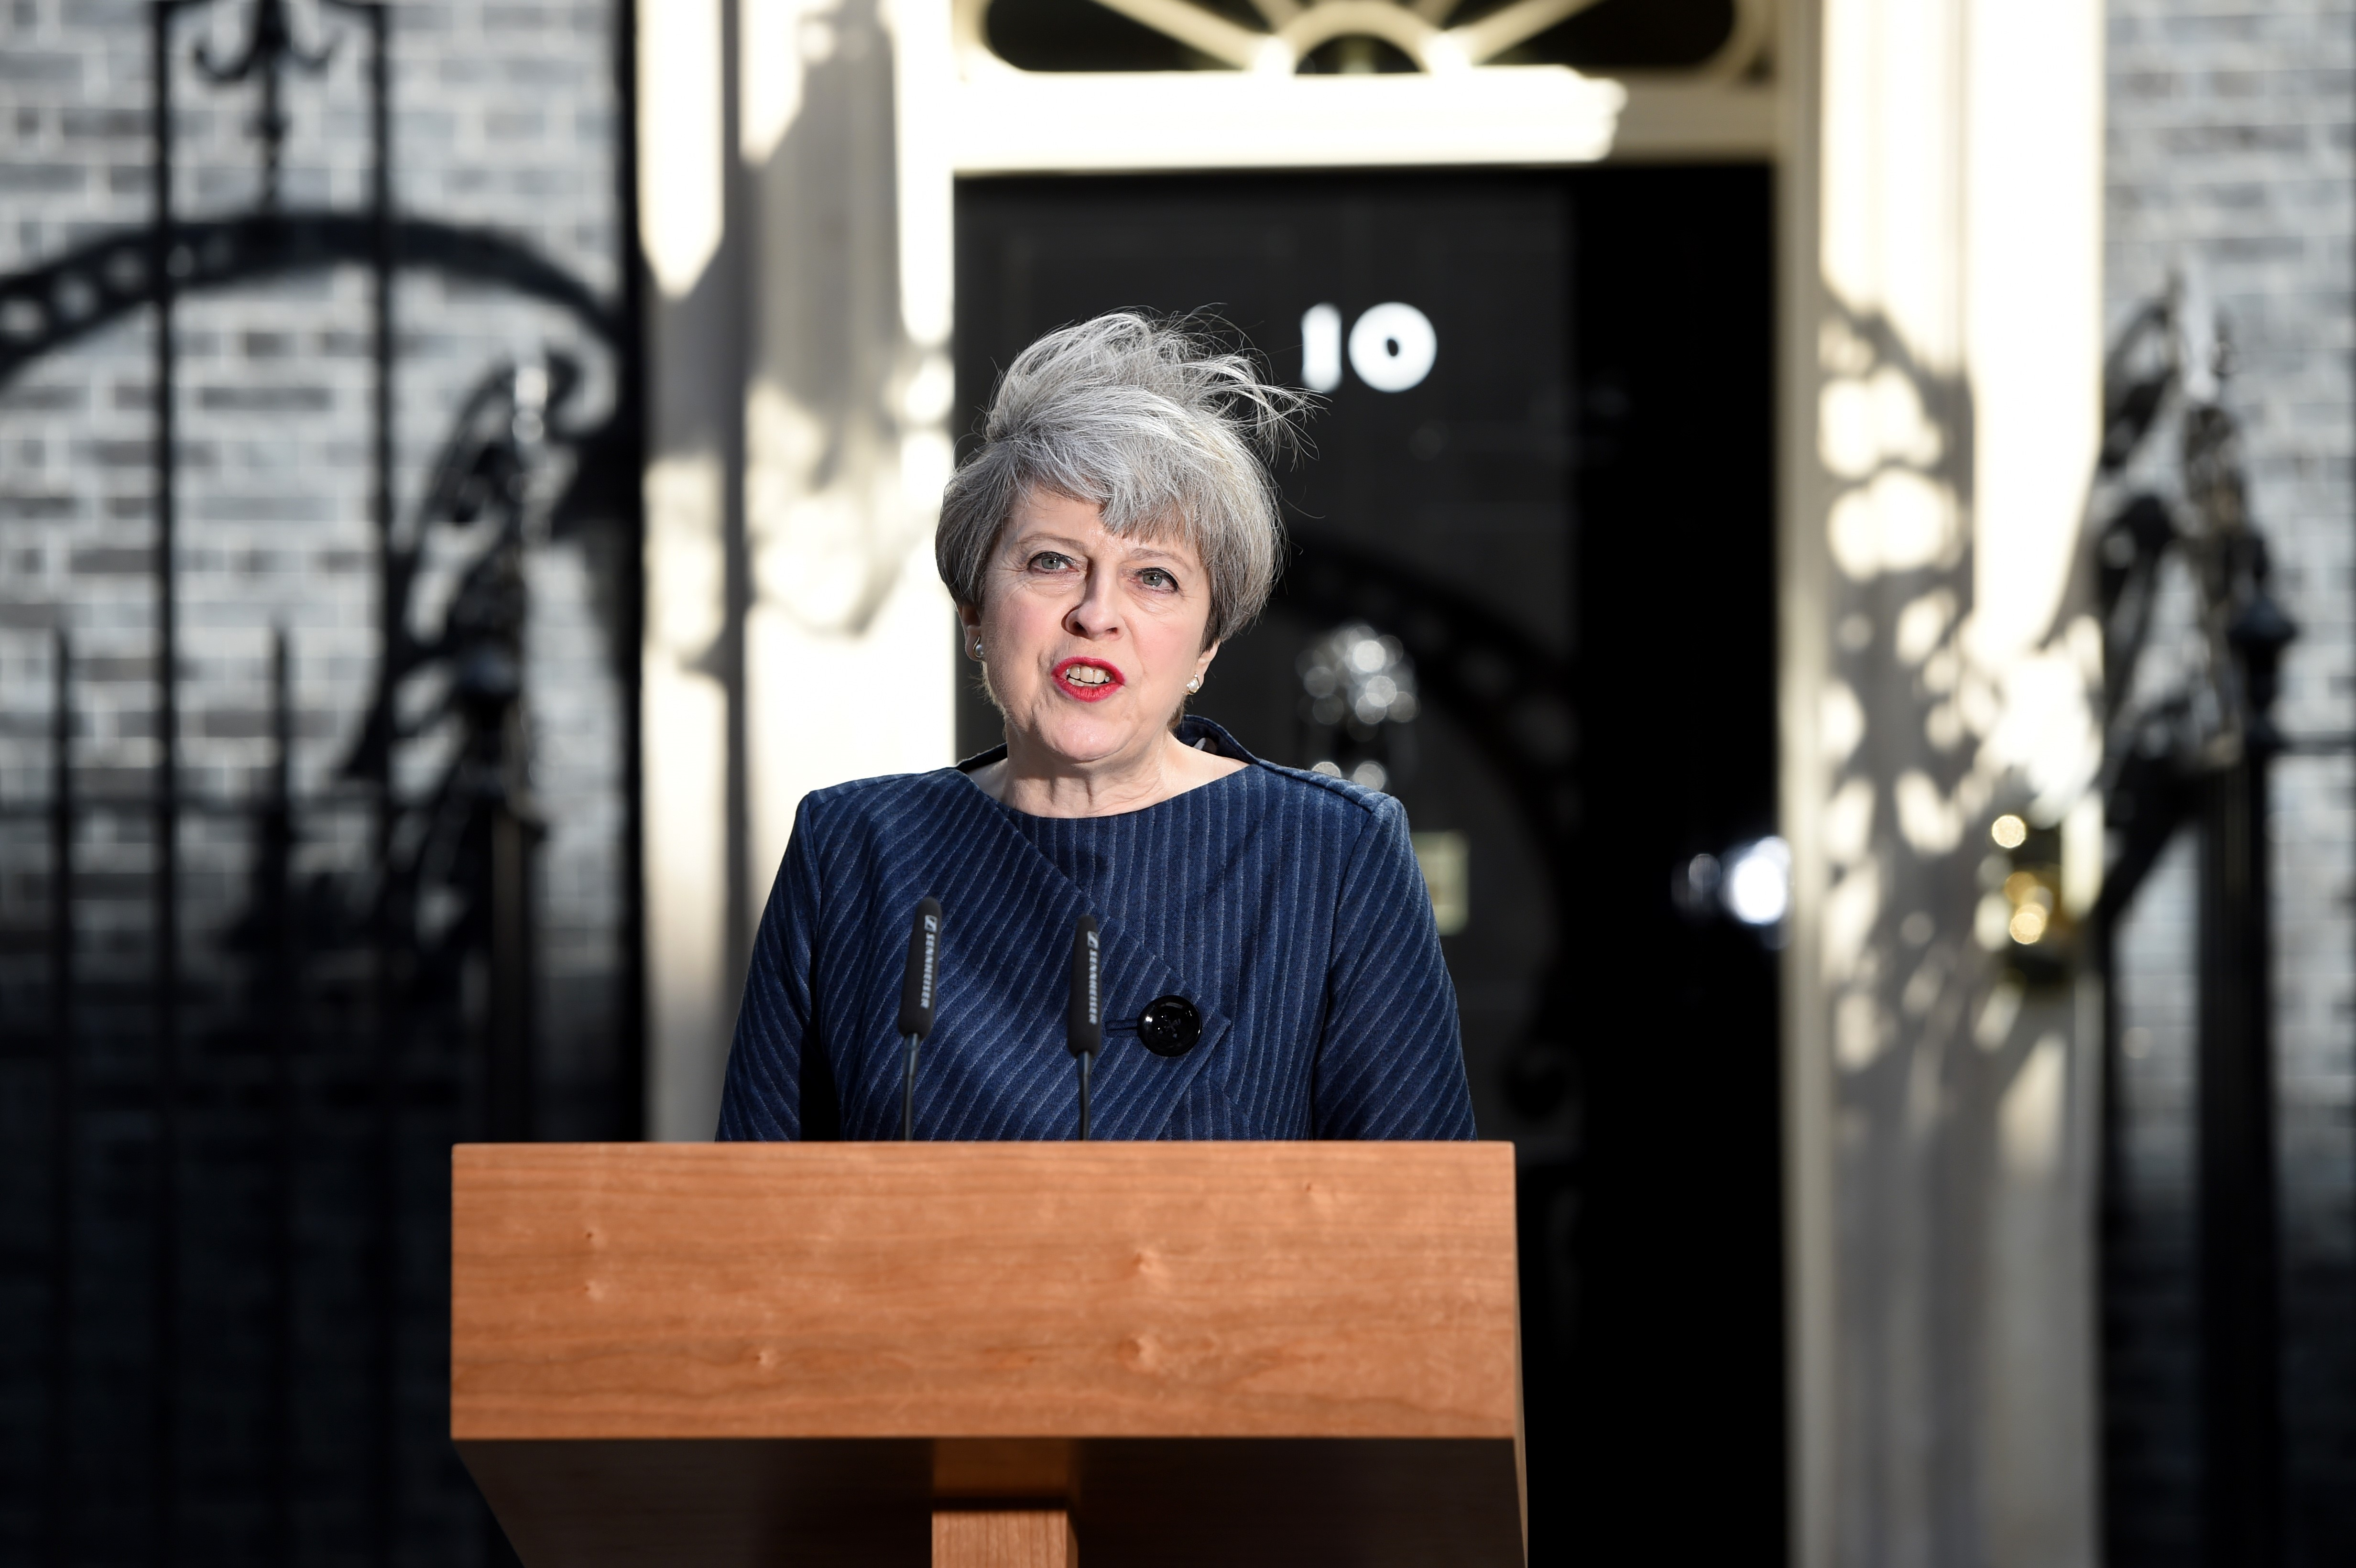 British Prime Minister Theresa May makes a statement to the nation in Downing Street on April 18, 2017 in London, United Kingdom.